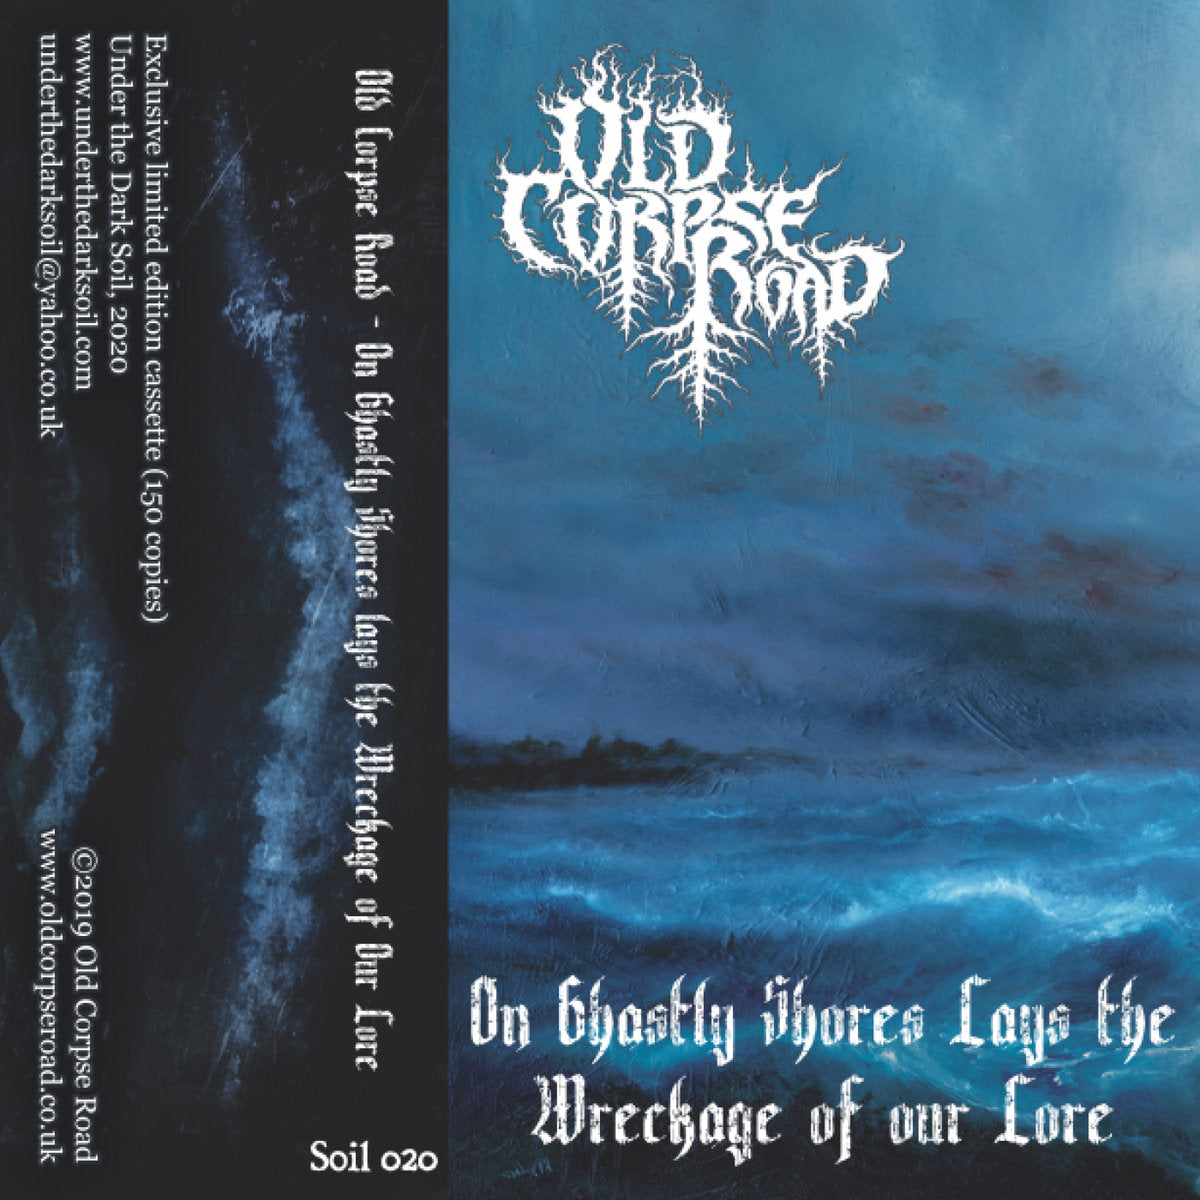 Old Corpse Road - On Ghastly Lays the Wreckage of our Lore TAPE